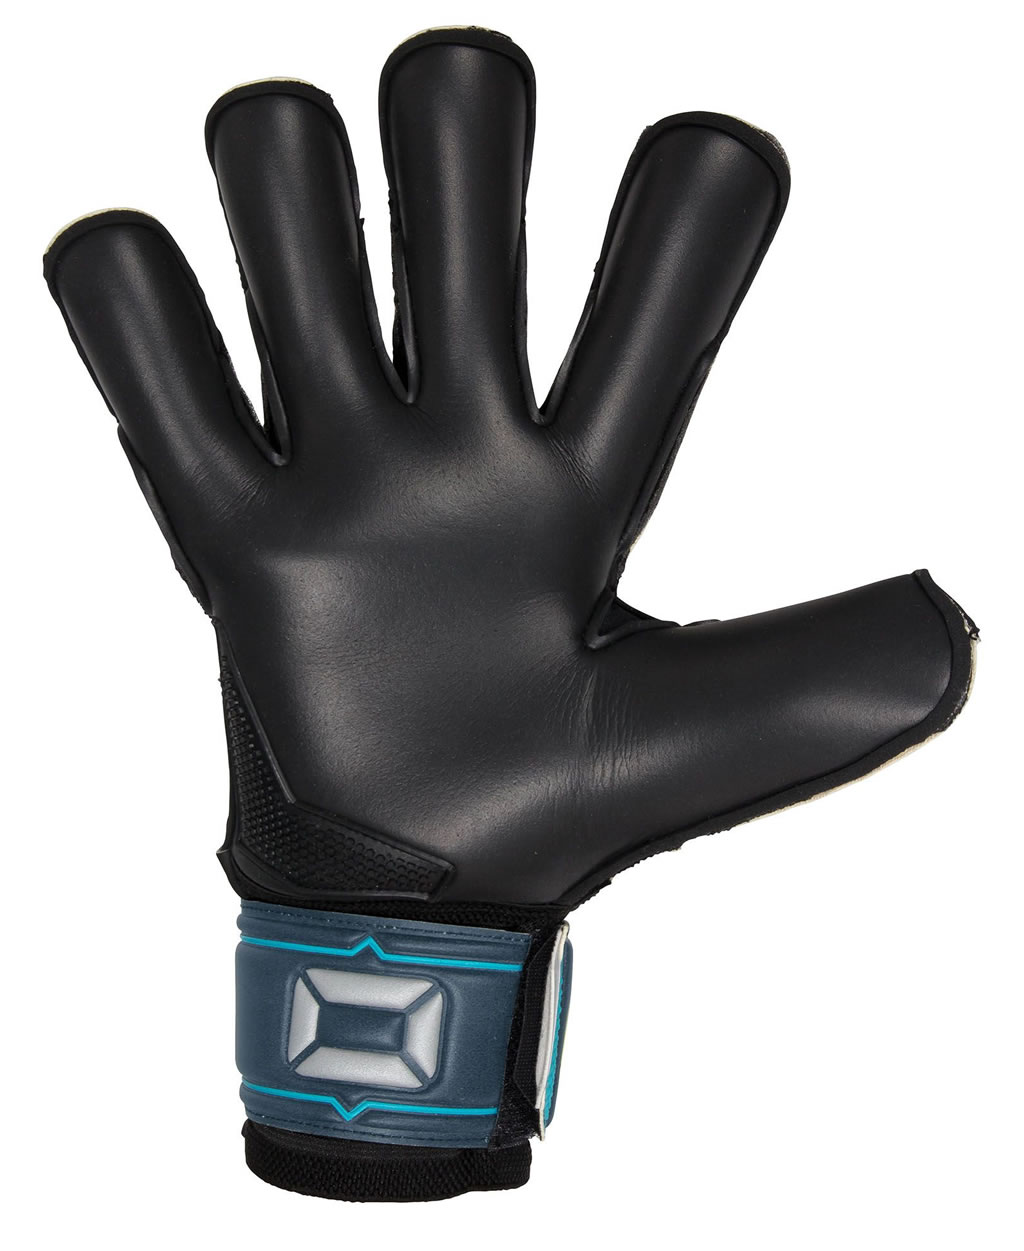 Stanno Hardground RFH Goalkeeper gloves, Palm